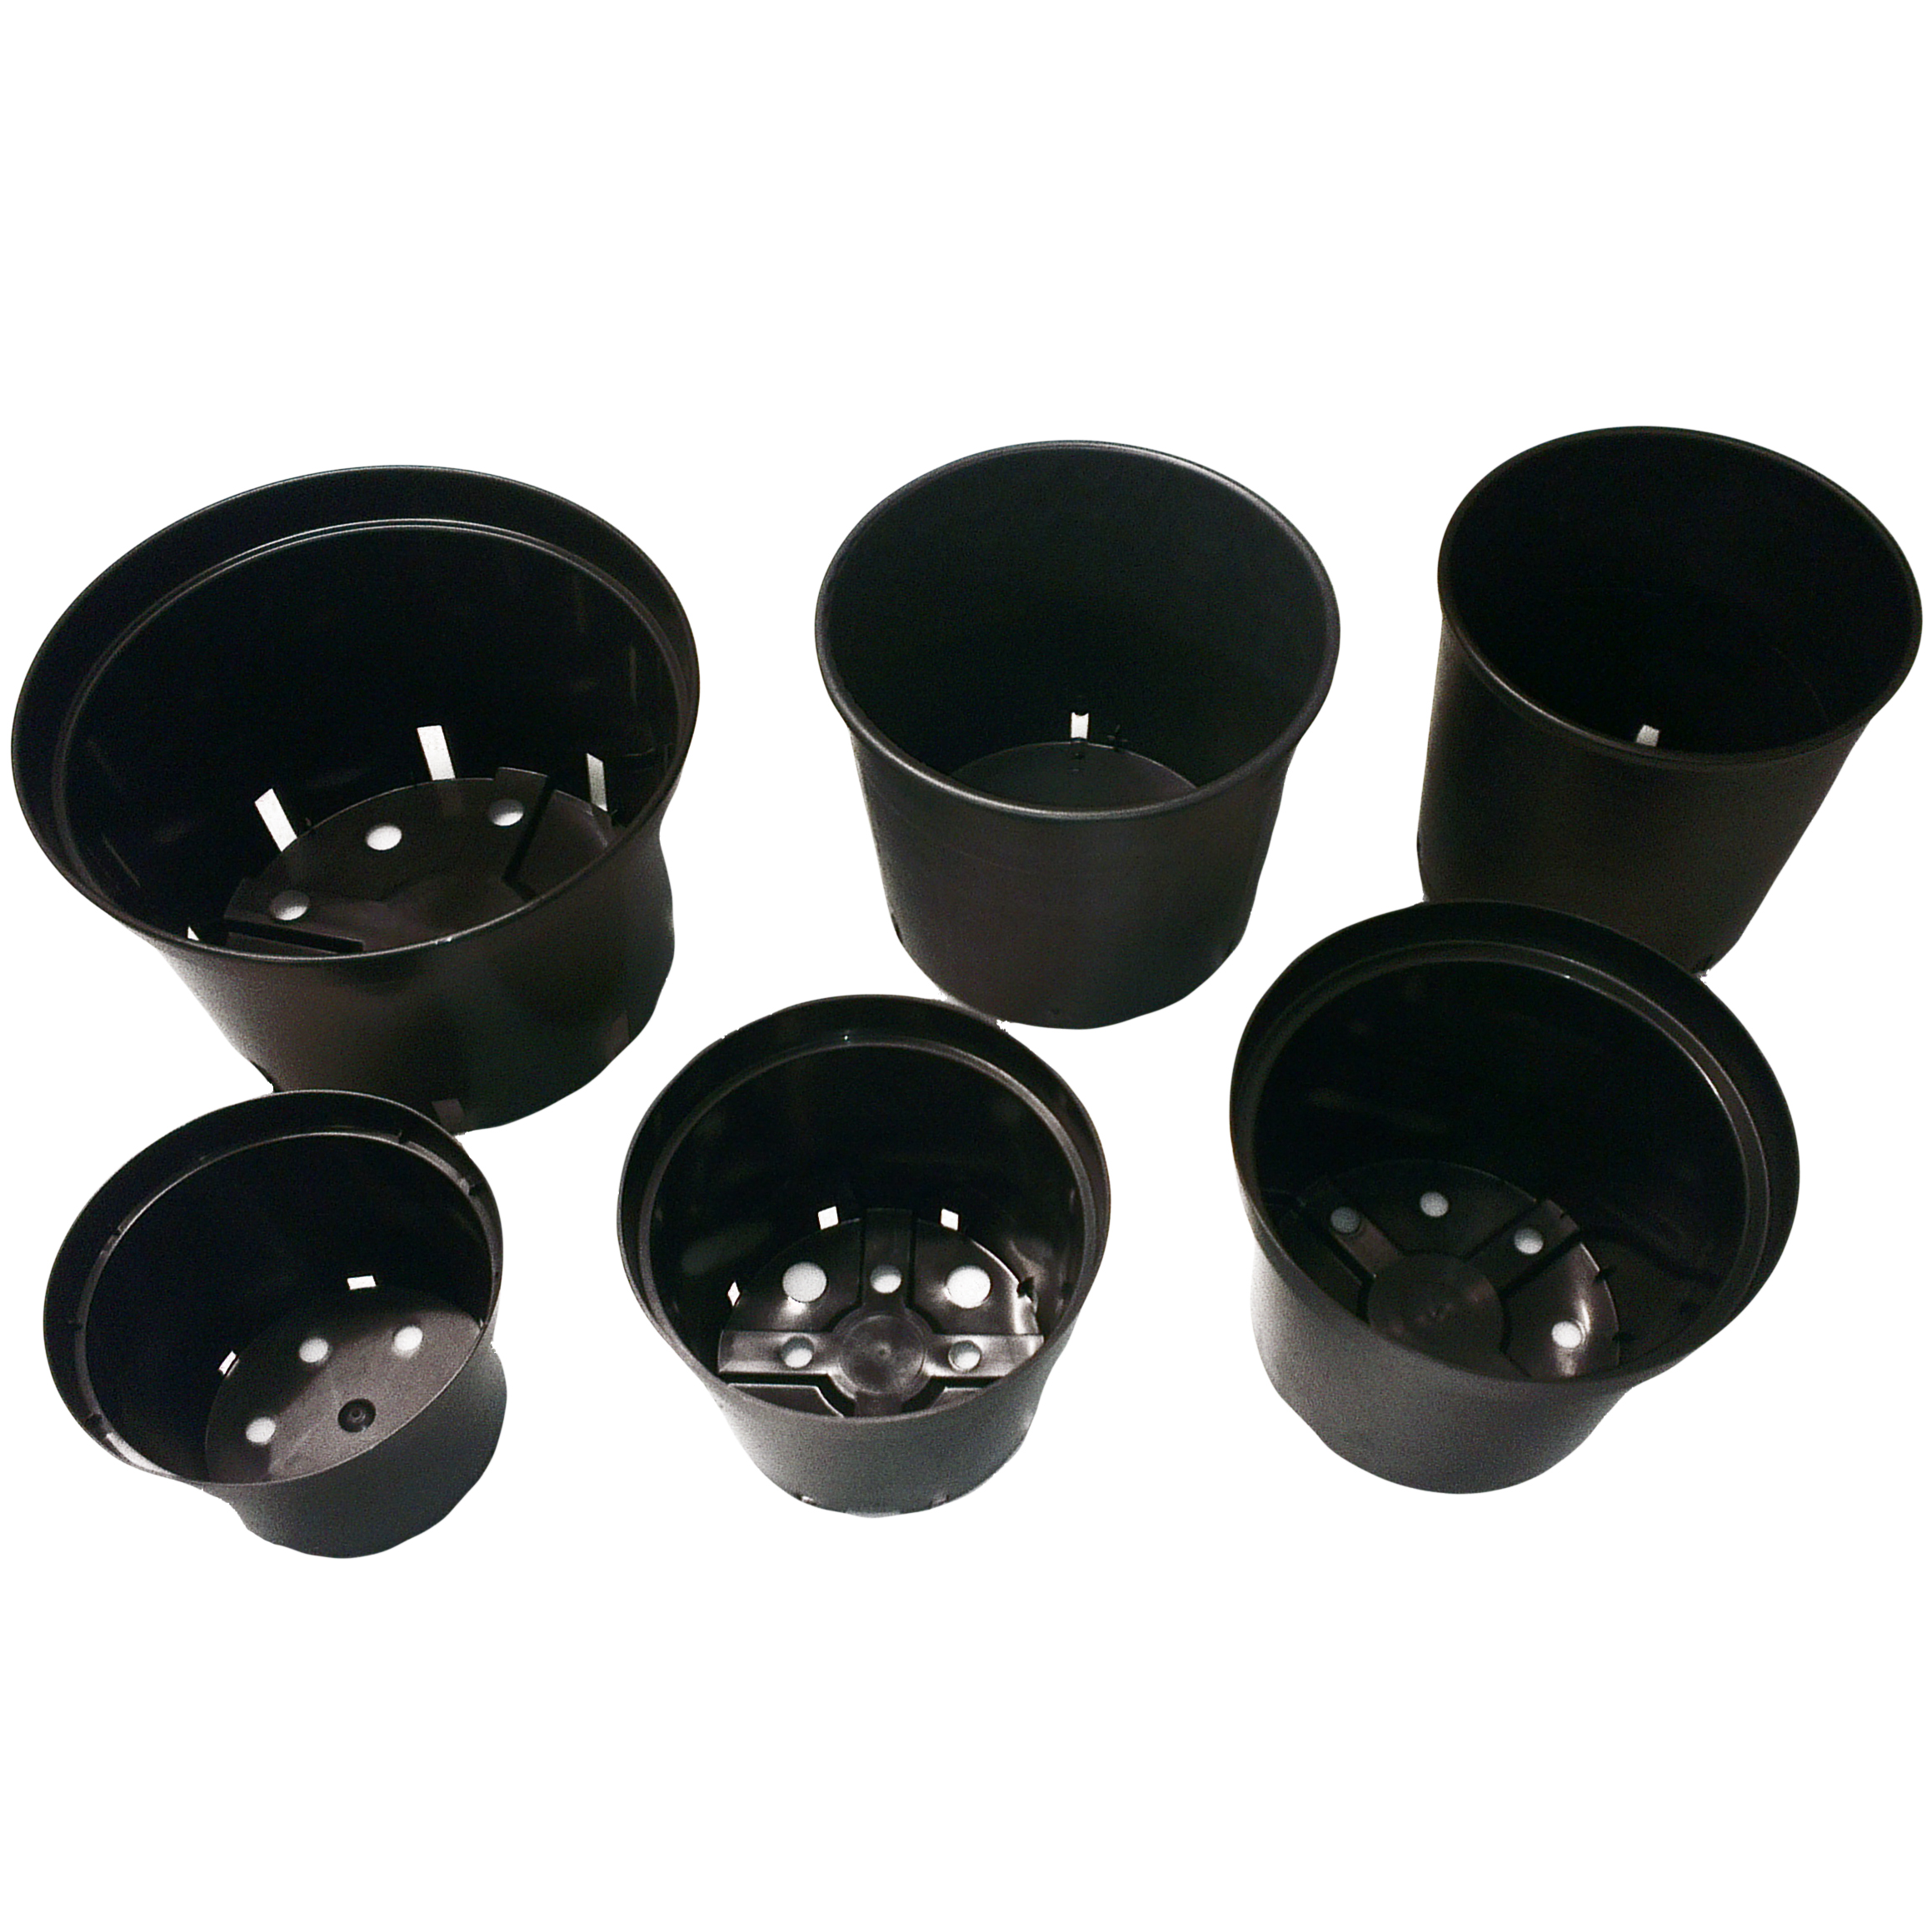 Strong black plastic plant flower pots in various sizes ebay for How strong is acrylic glass